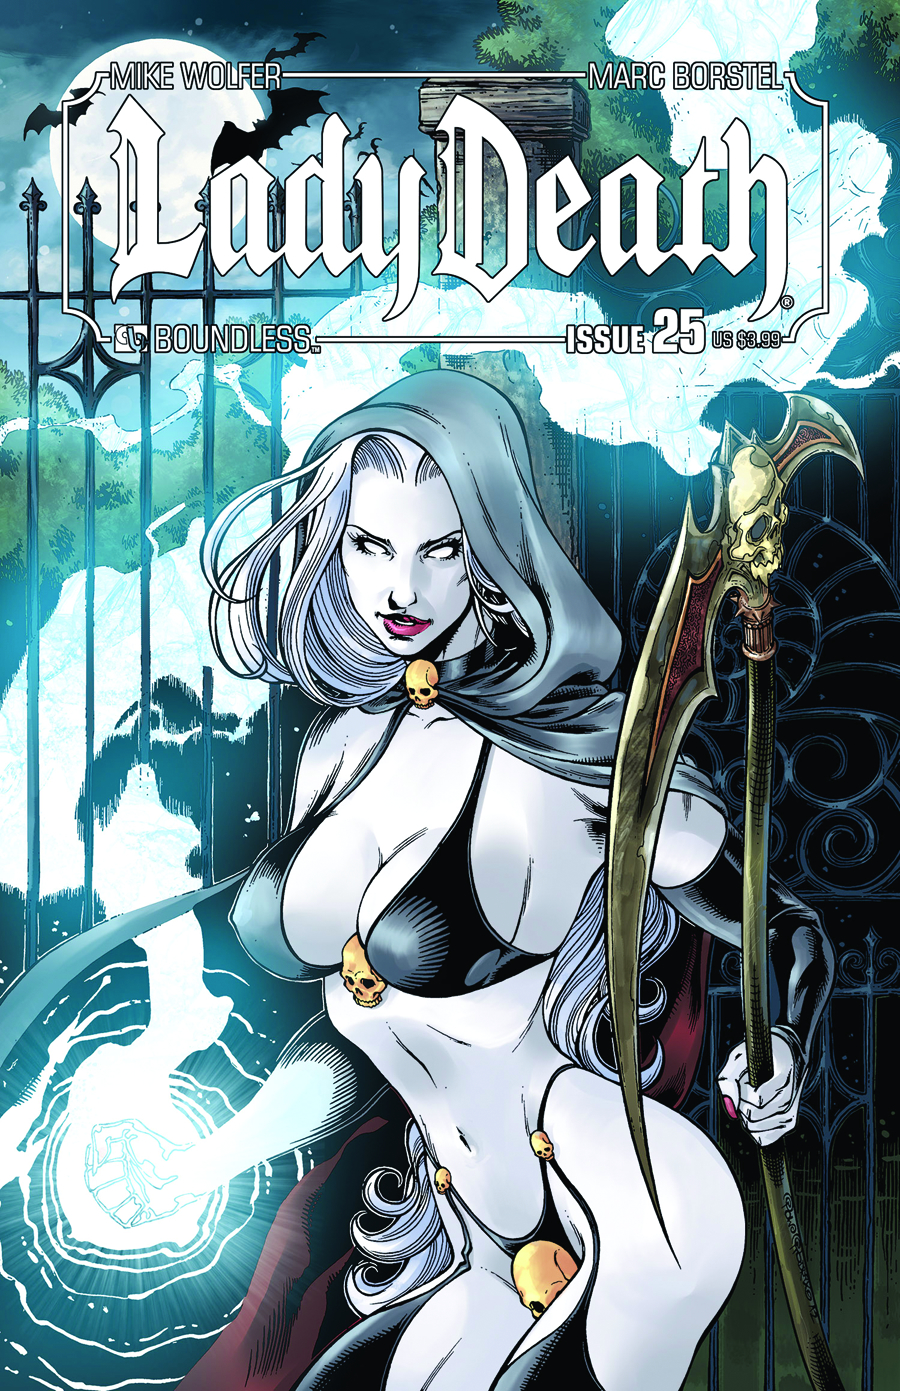 LADY DEATH (ONGOING) #25